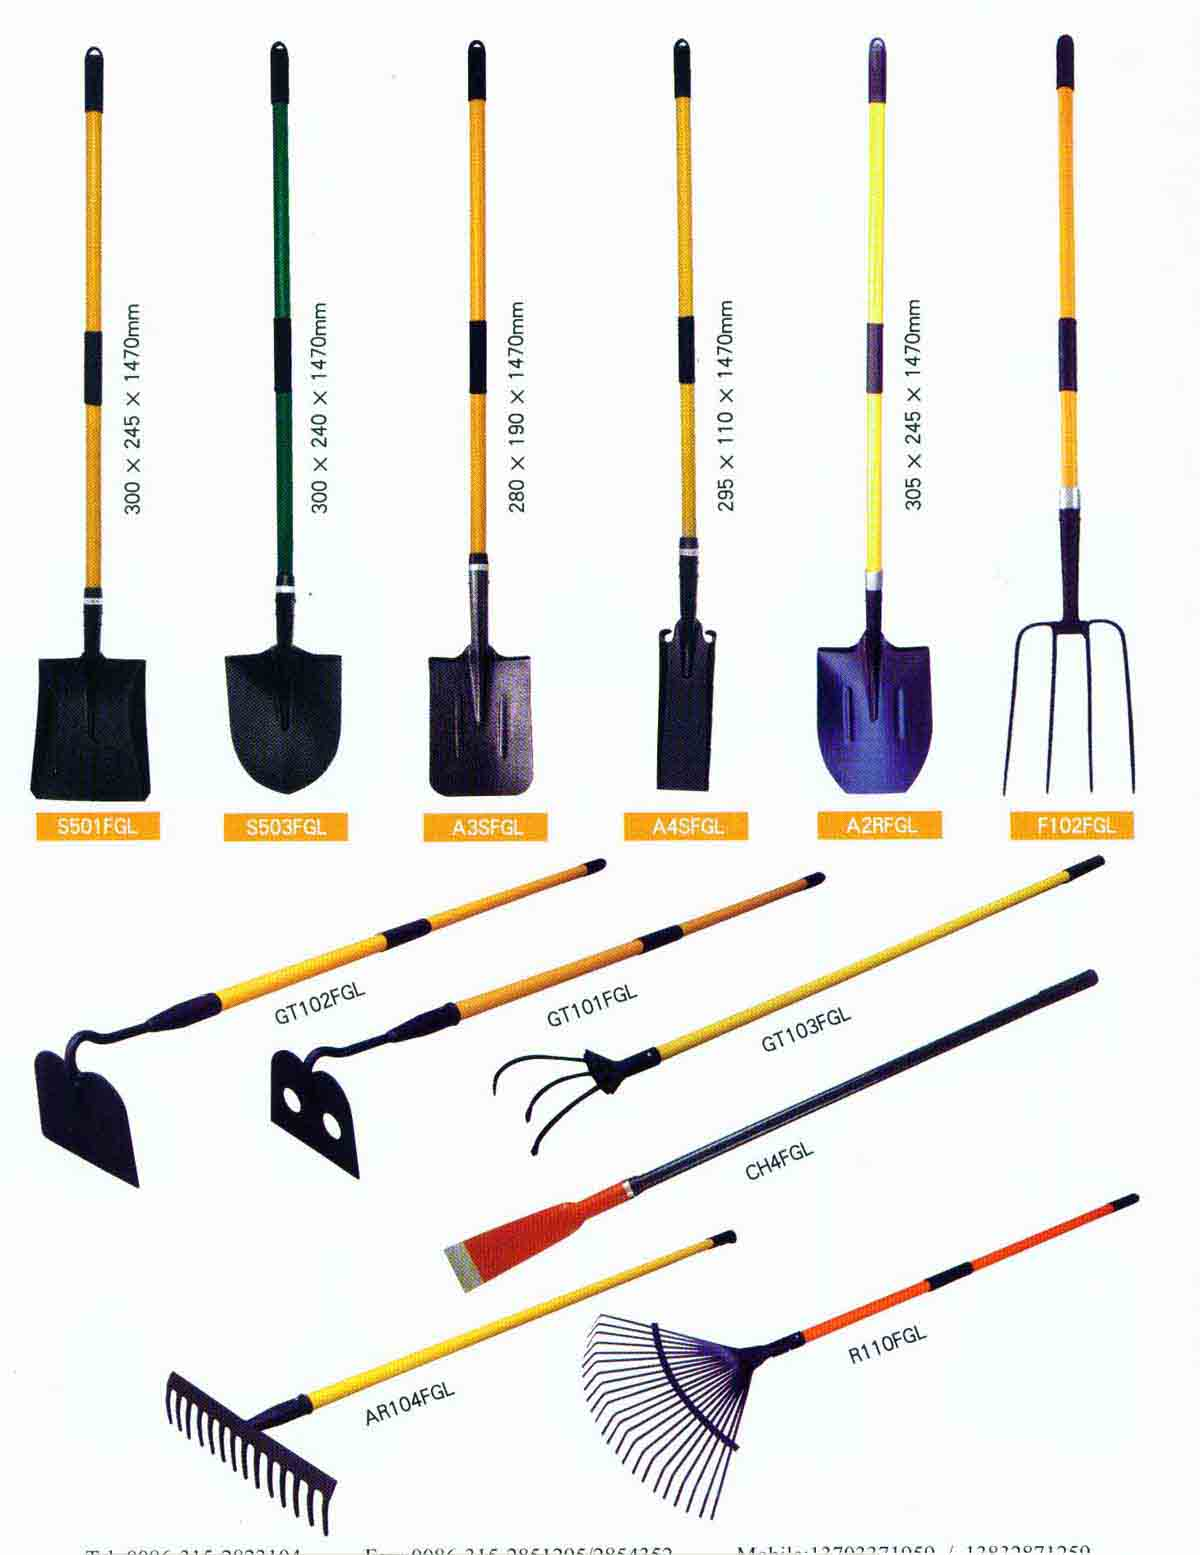 shovel with fiberglass handle s501fgl s503fgl a3sfgl a4sfgl 726. shovel with fiberglass handle s501fgl s503fgl a3sfgl a4sfgl 726